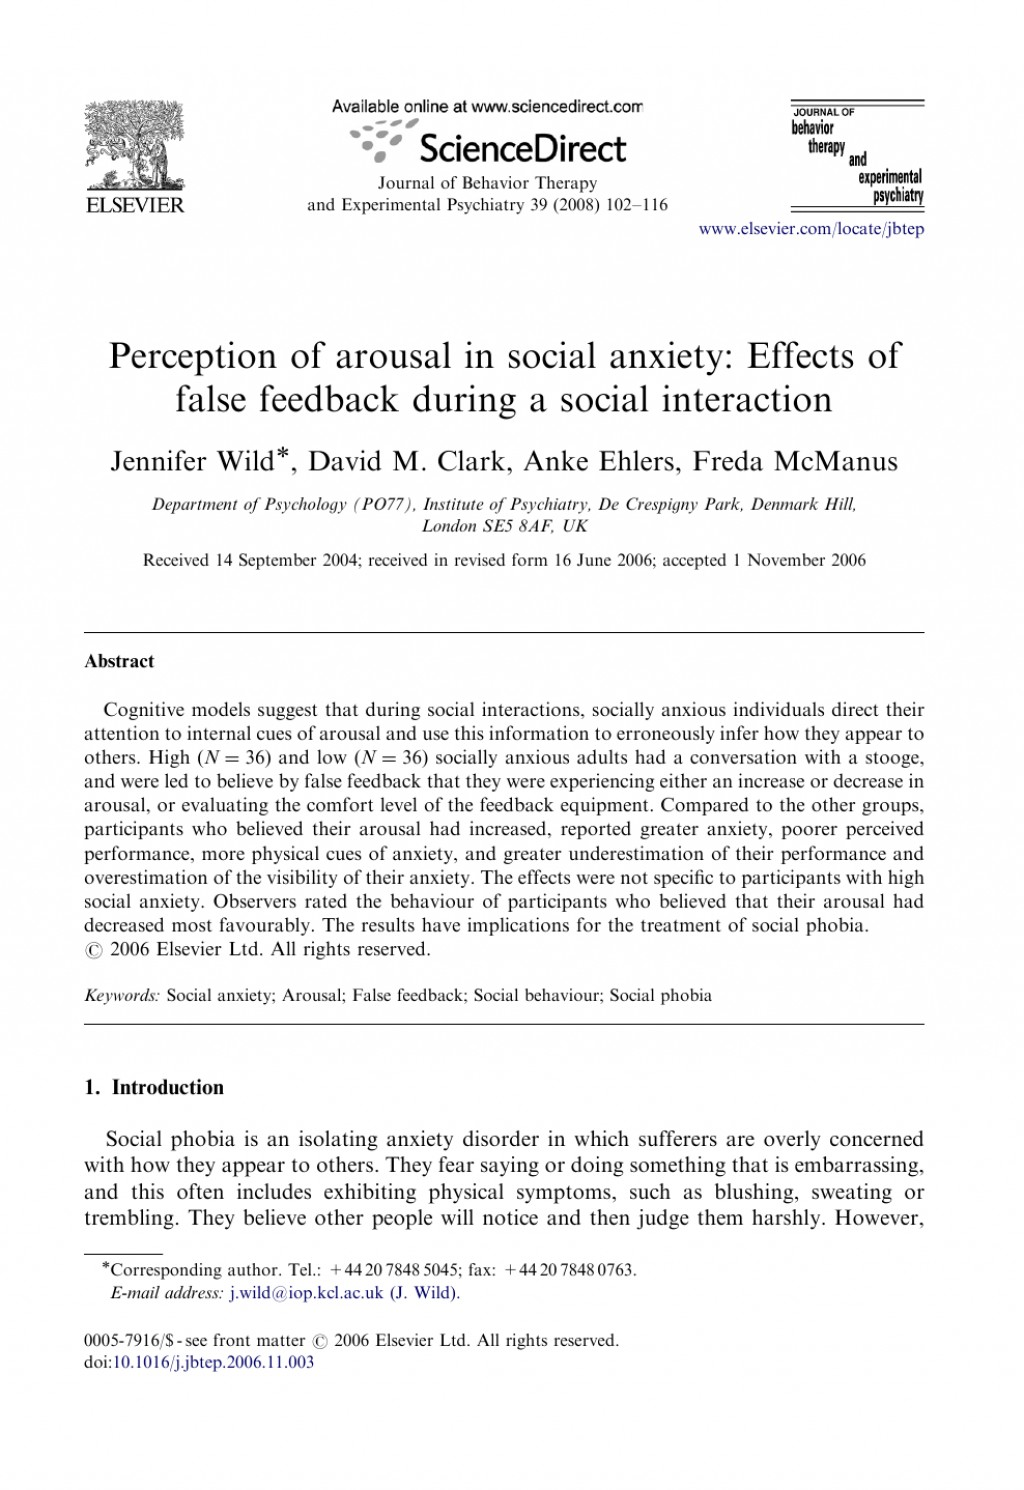 008 Psychology Research Paper On Social Anxiety Disorder Staggering Large